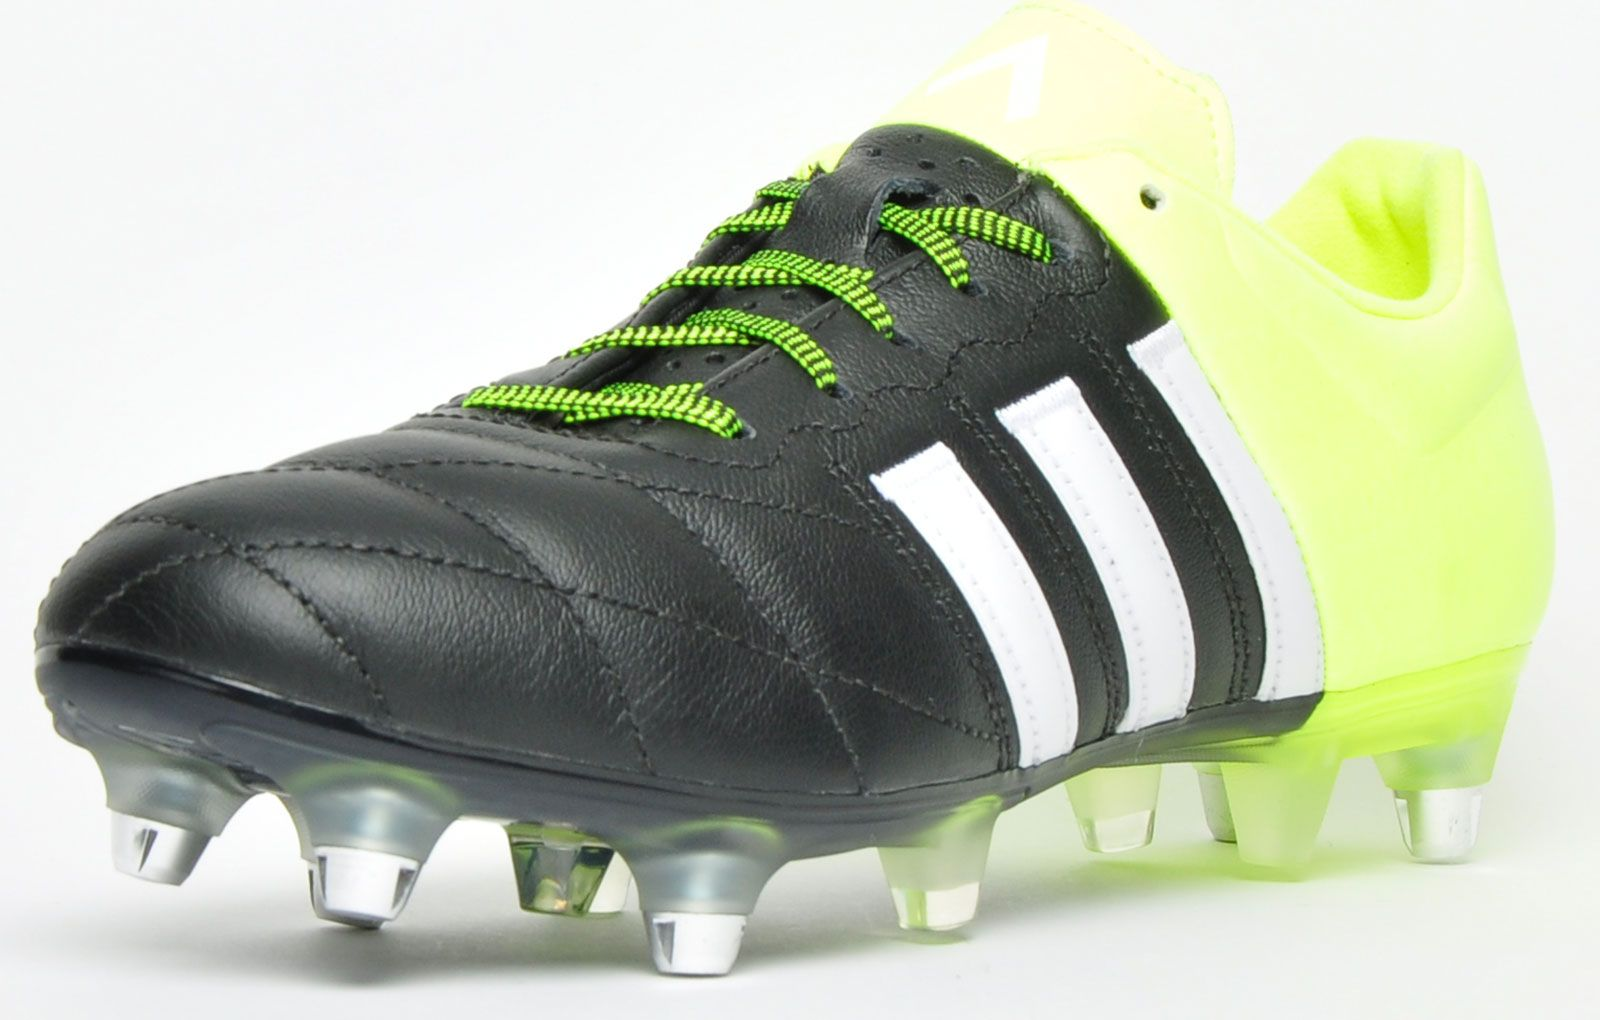 Adidas Ace 15.2 SG Leather Pro Mens